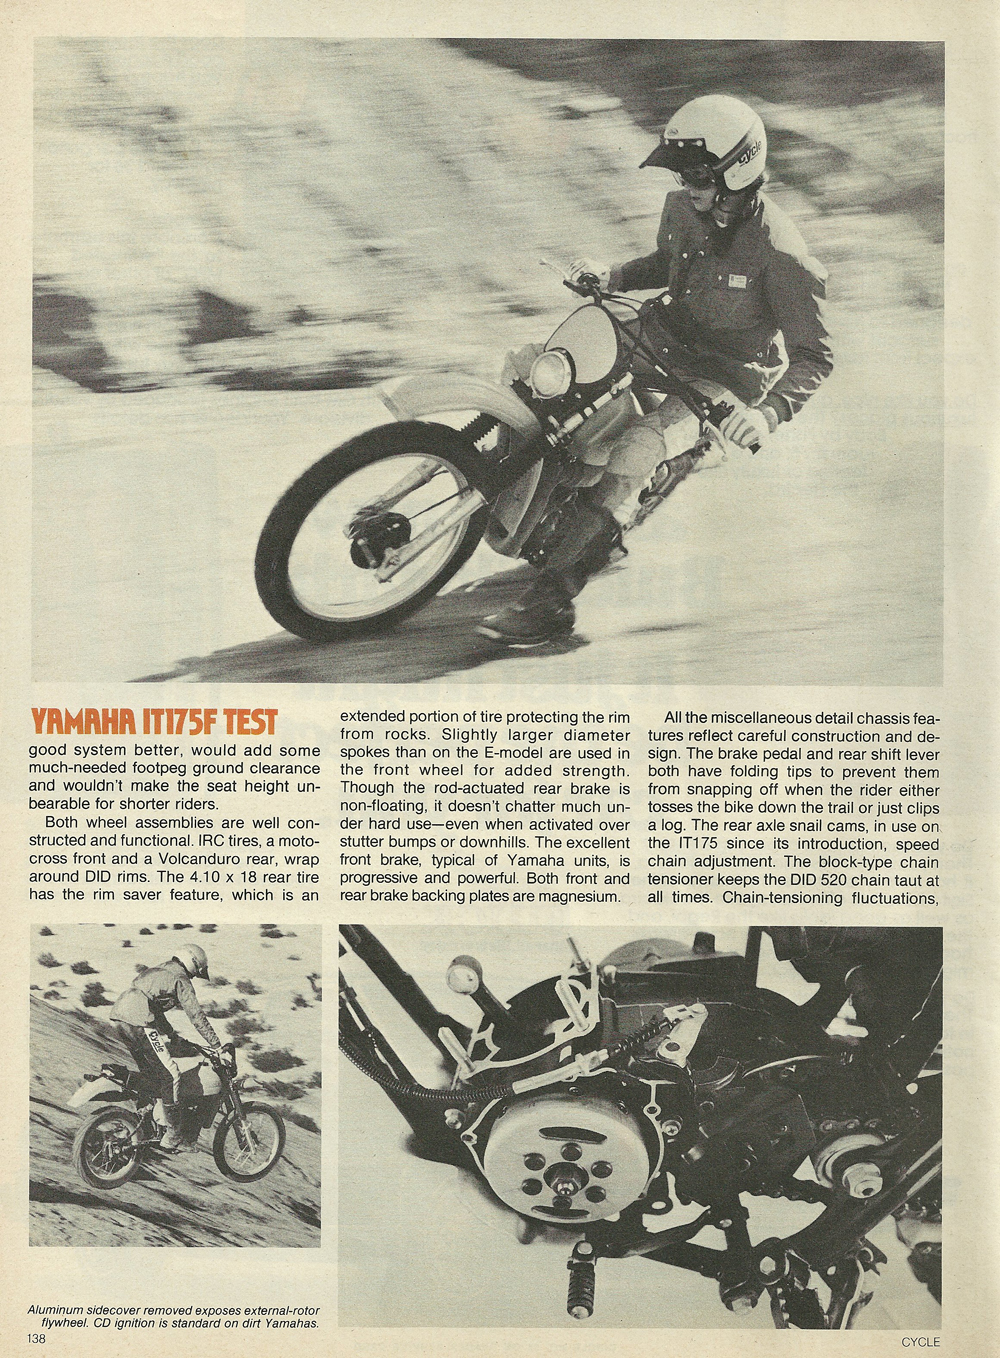 1979 Yamaha IT175F off road test 6.jpg